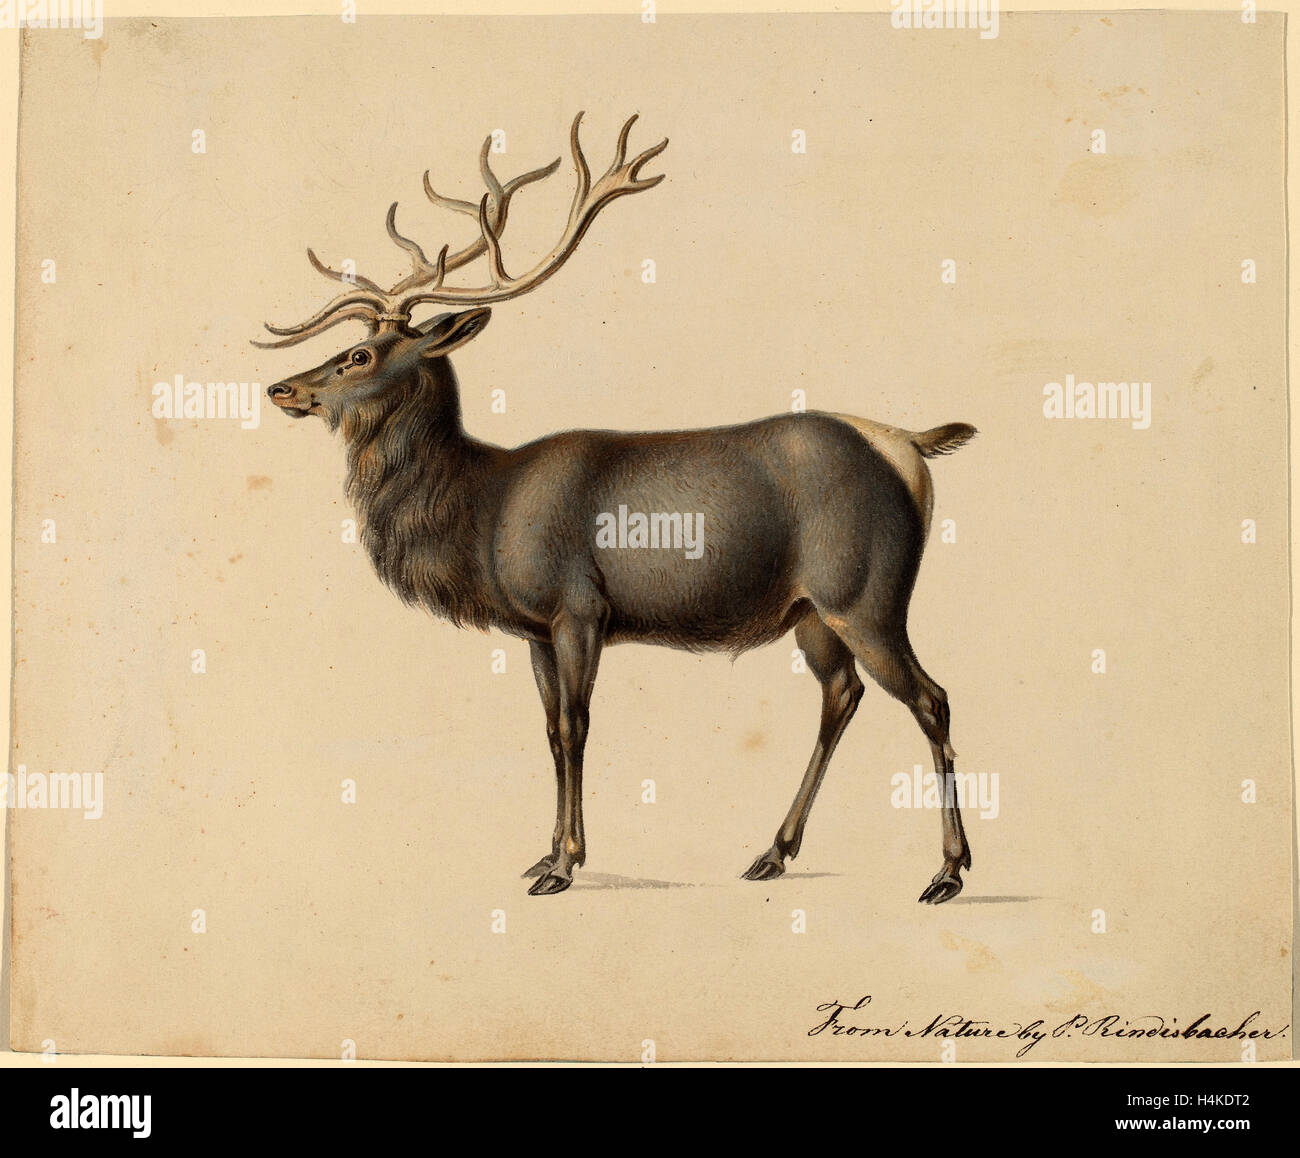 Peter Rindisbacher, European Elk, American, 1806 - 1834, gouache on wove paper - Stock Image